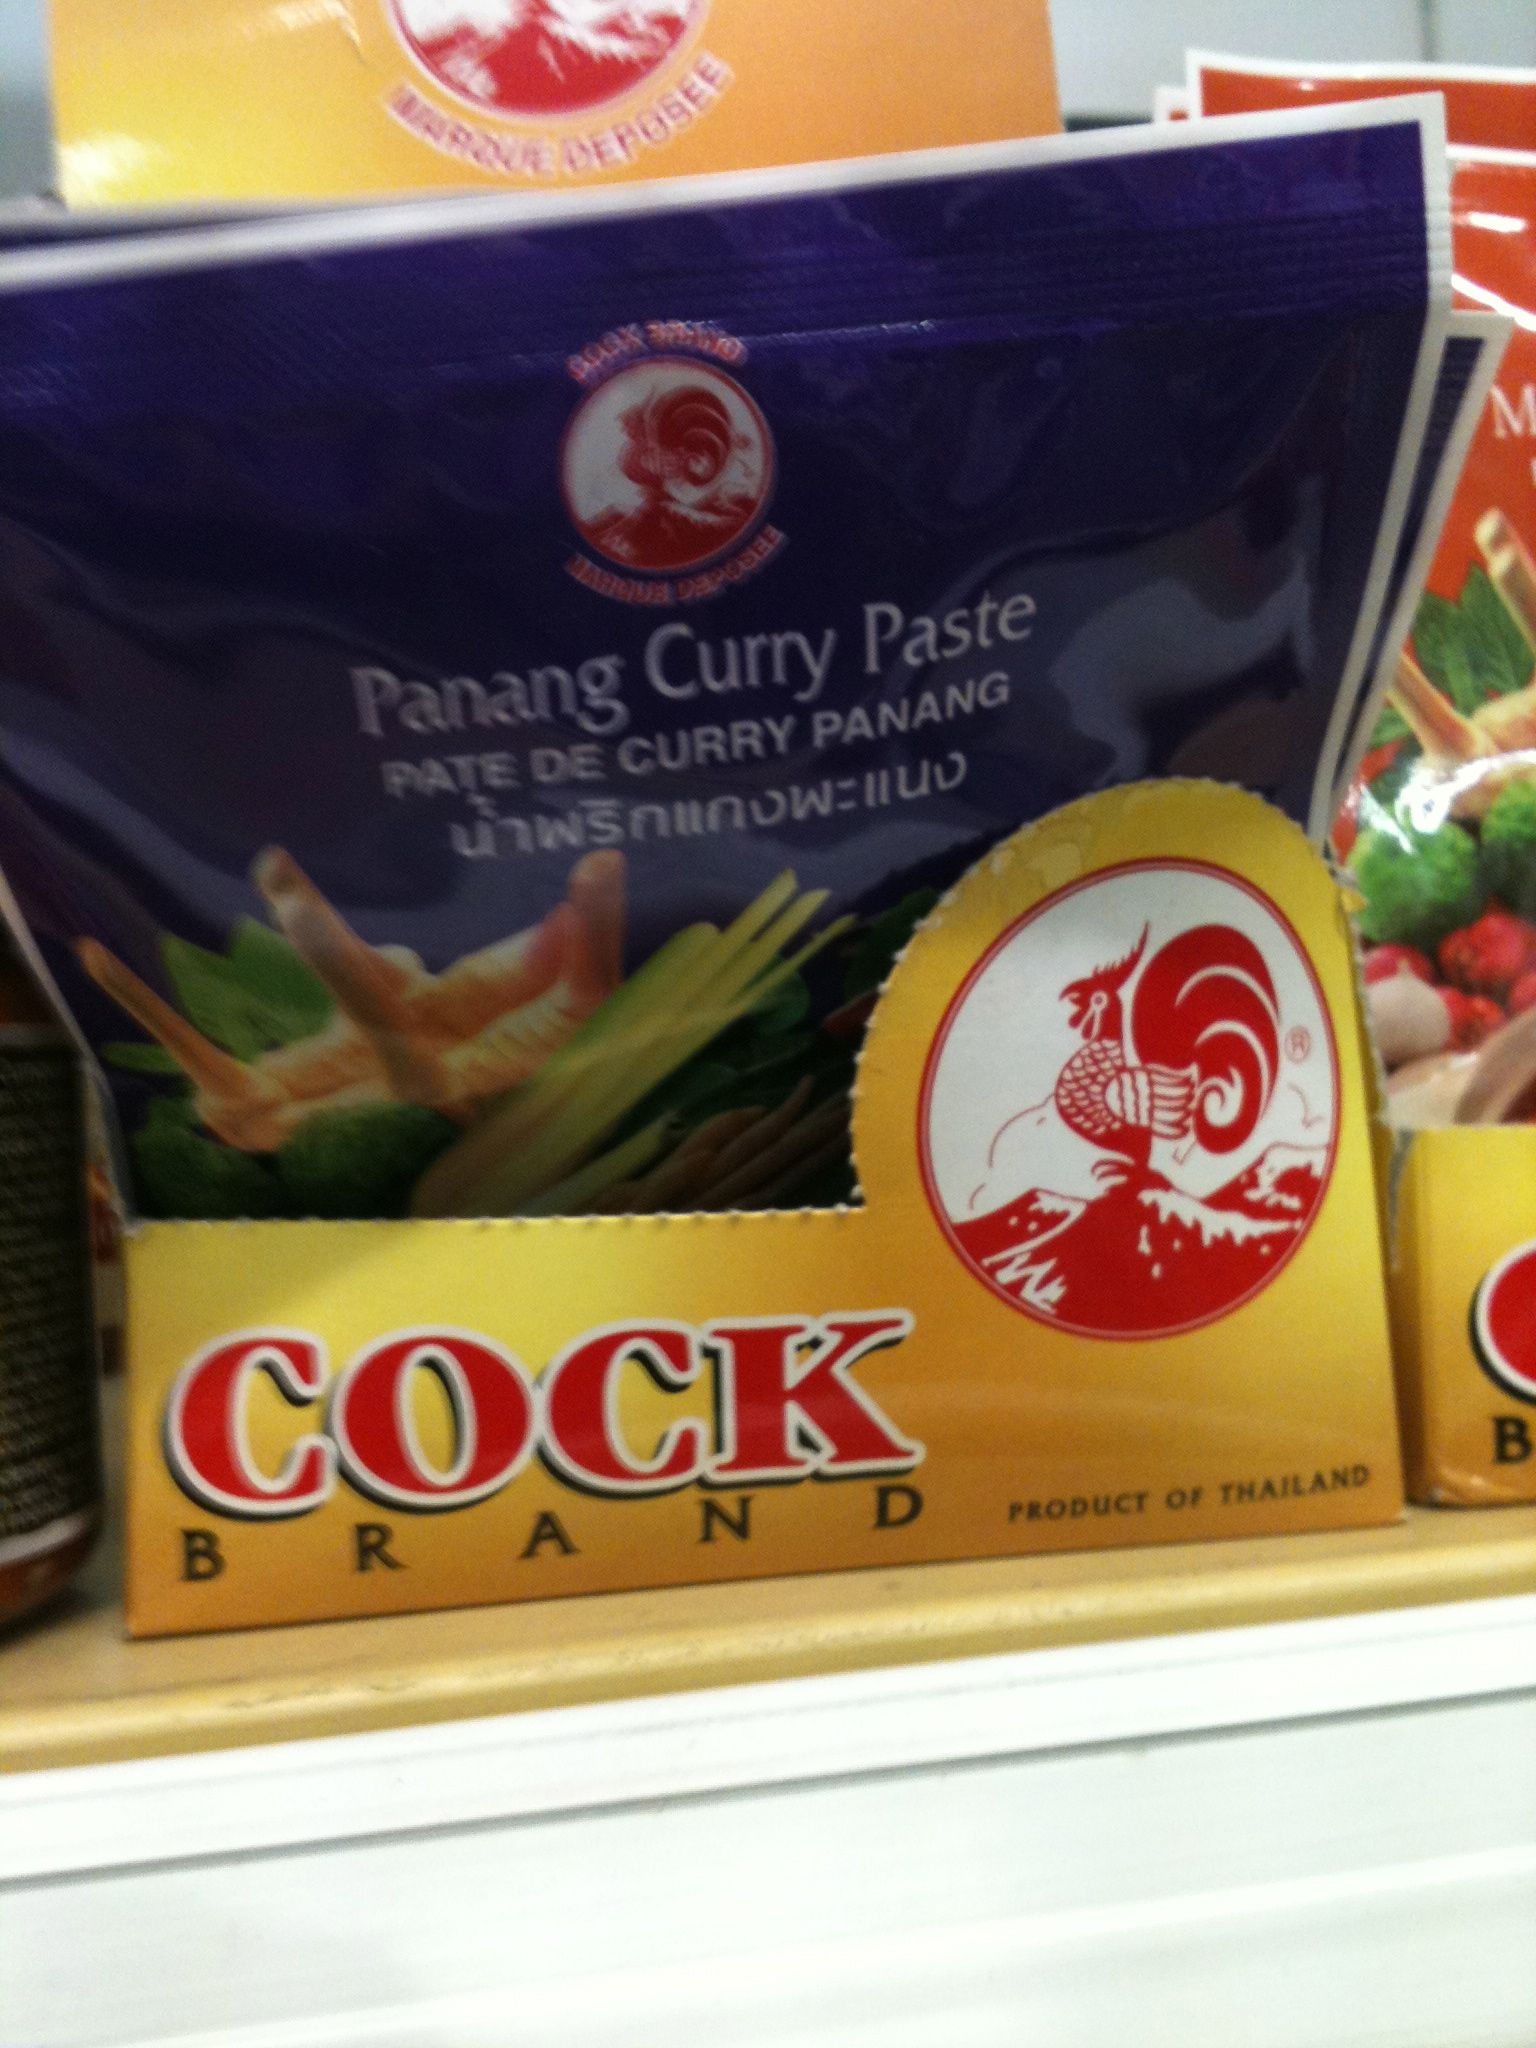 The best brand in soup